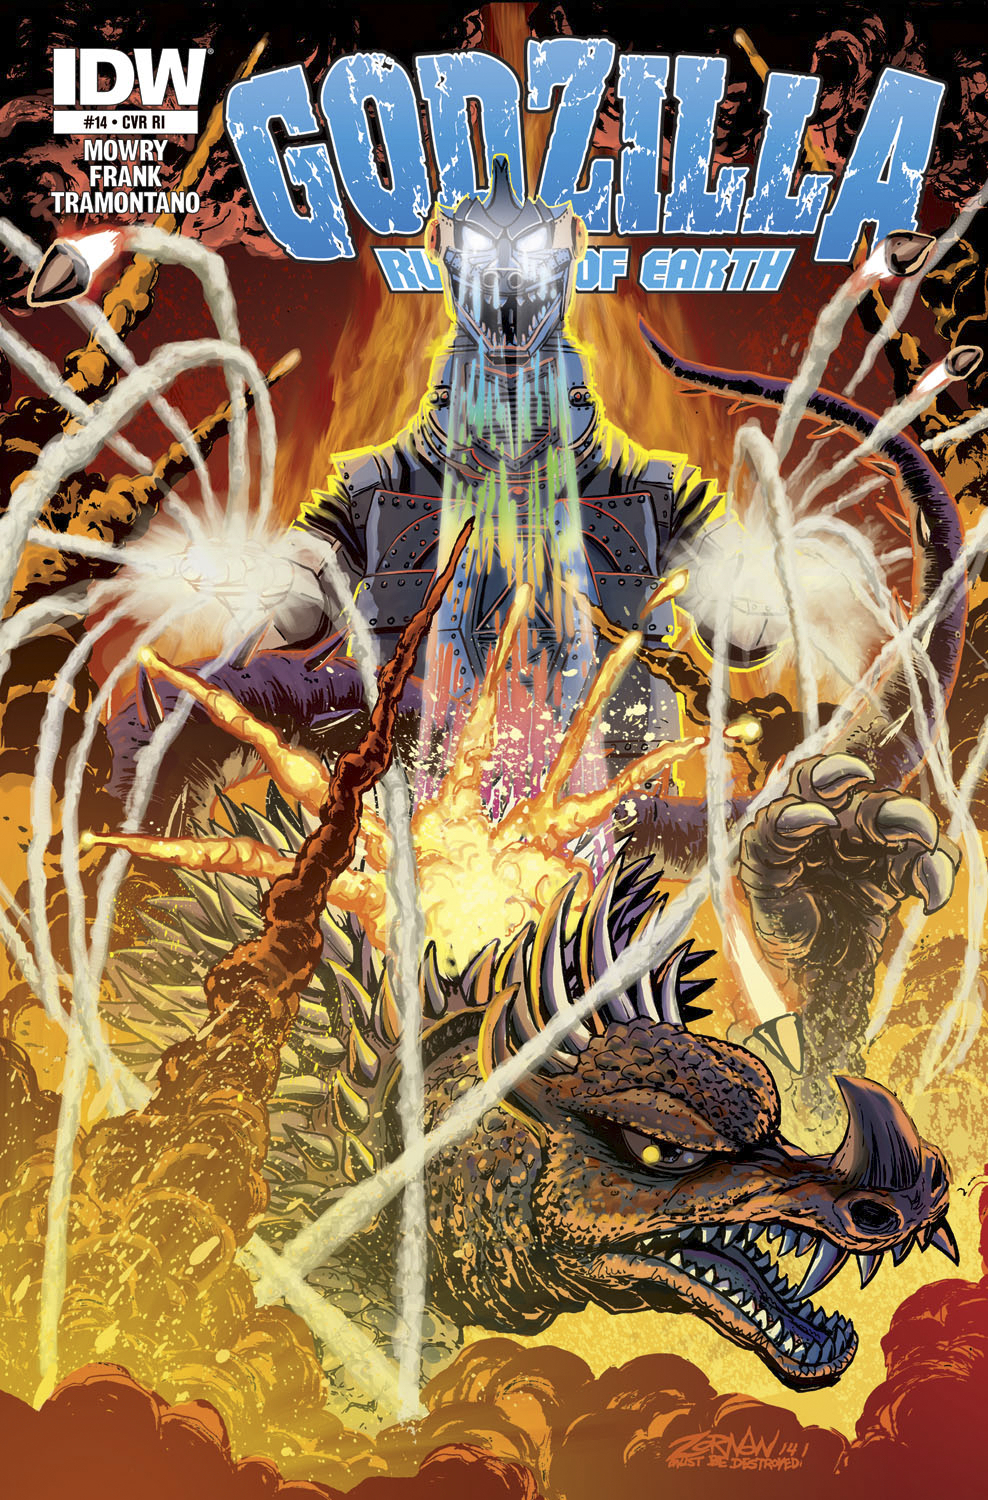 GODZILLA RULERS OF THE EARTH #14